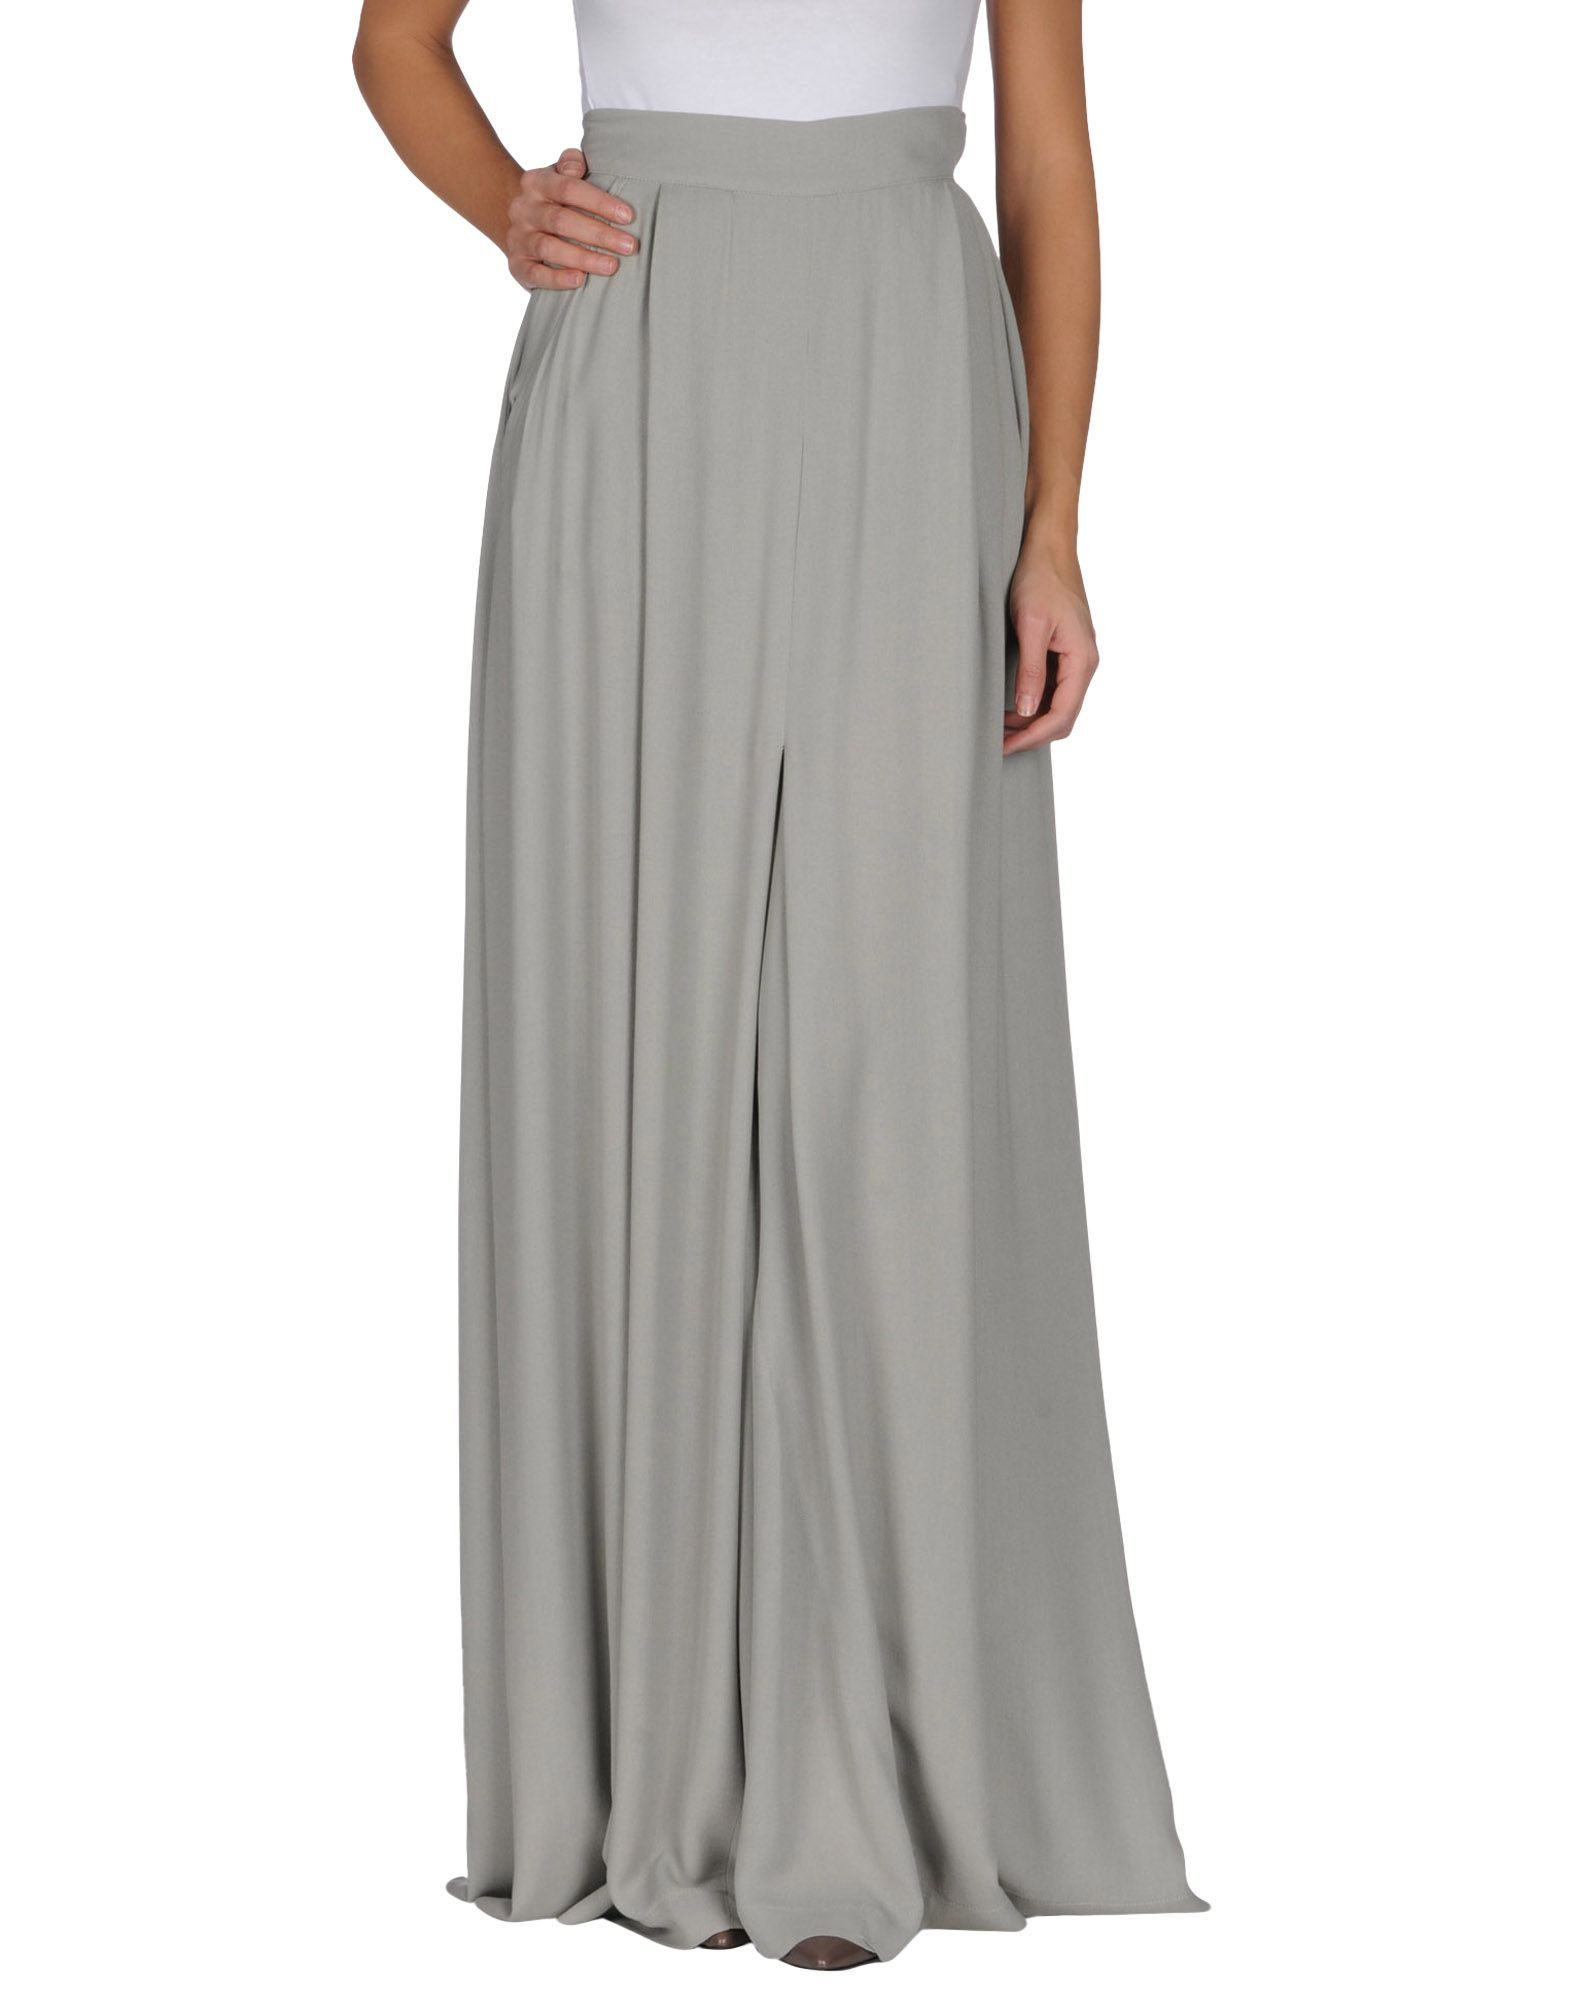 neyschelethel.ga offers 1, gray long skirt products. About 40% of these are plus size dress & skirts, 31% are casual dresses, and 18% are skirts. A wide variety of gray long skirt options are available to you, such as maternity, plus size, and anti-static.